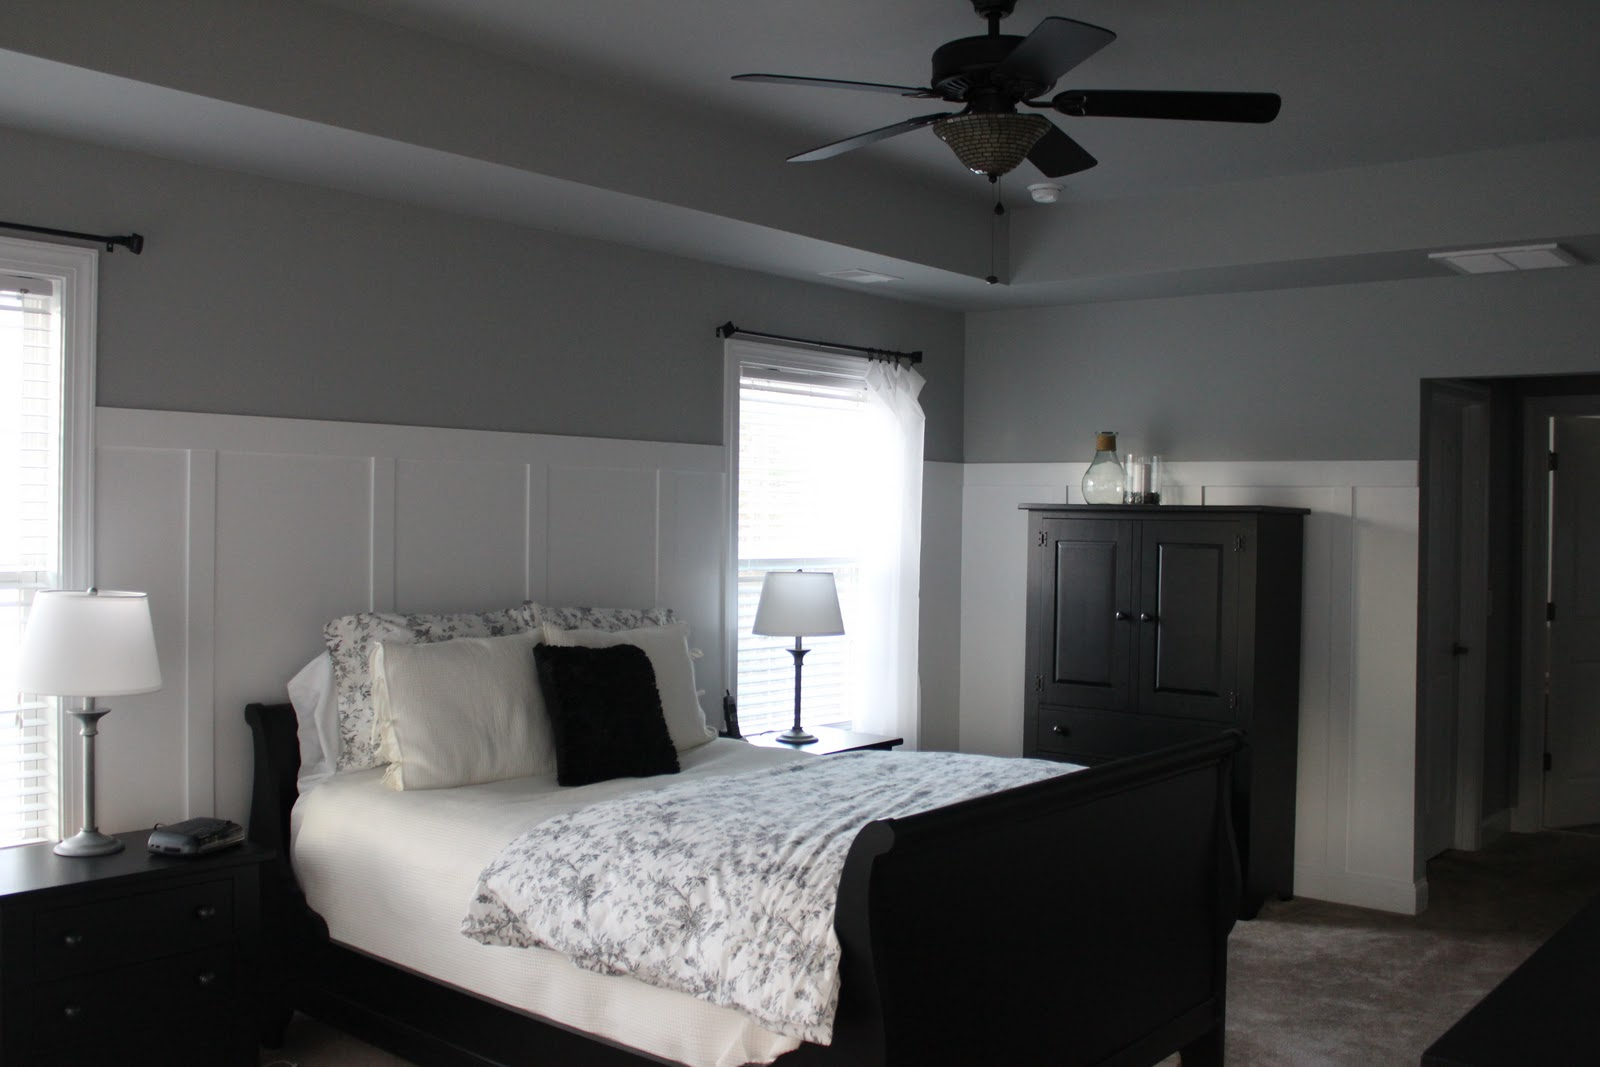 Cents-able Spaces: Master Bedroom